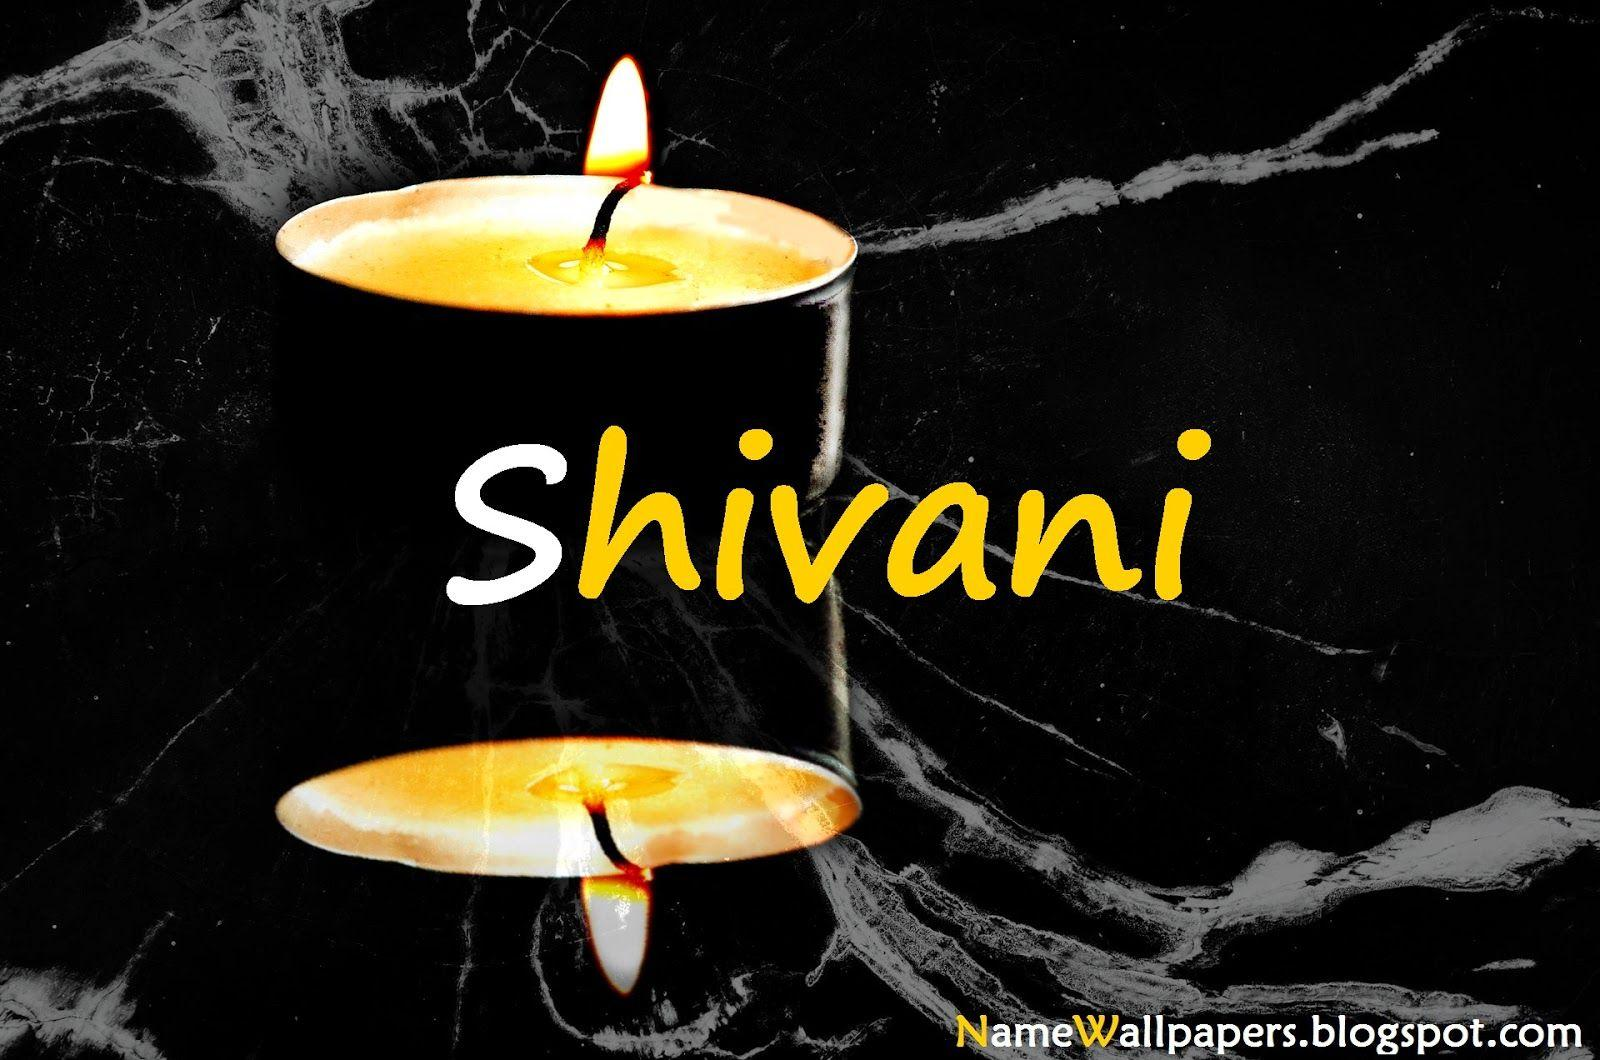 Shivani Name Wallpapers In 3d Wallpaper Cave